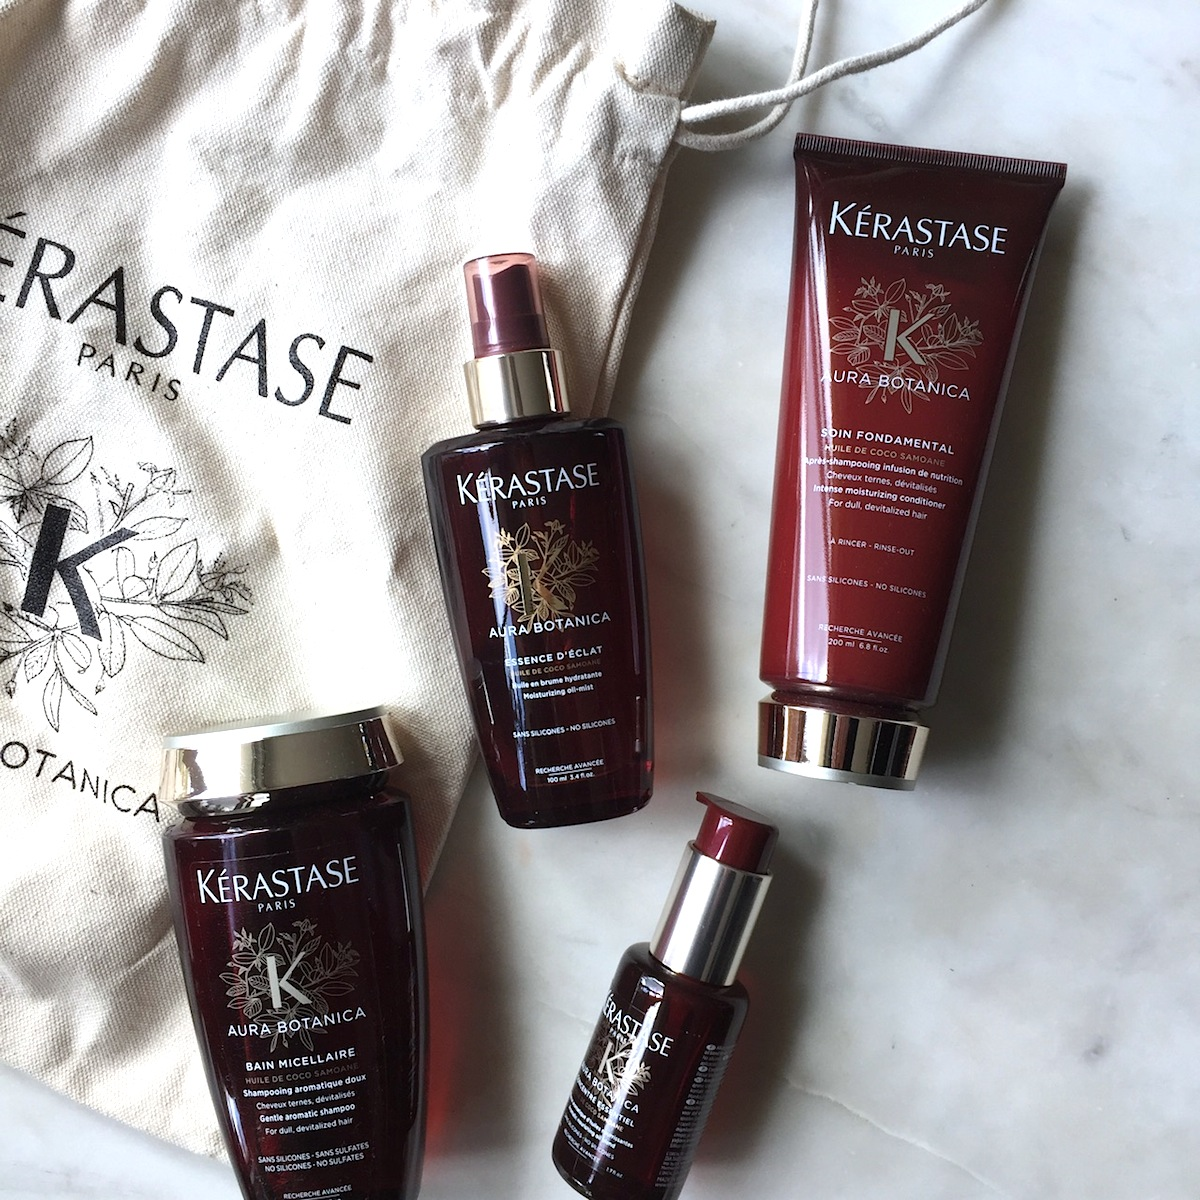 Kerastase Aura Botanica collection: A quick review